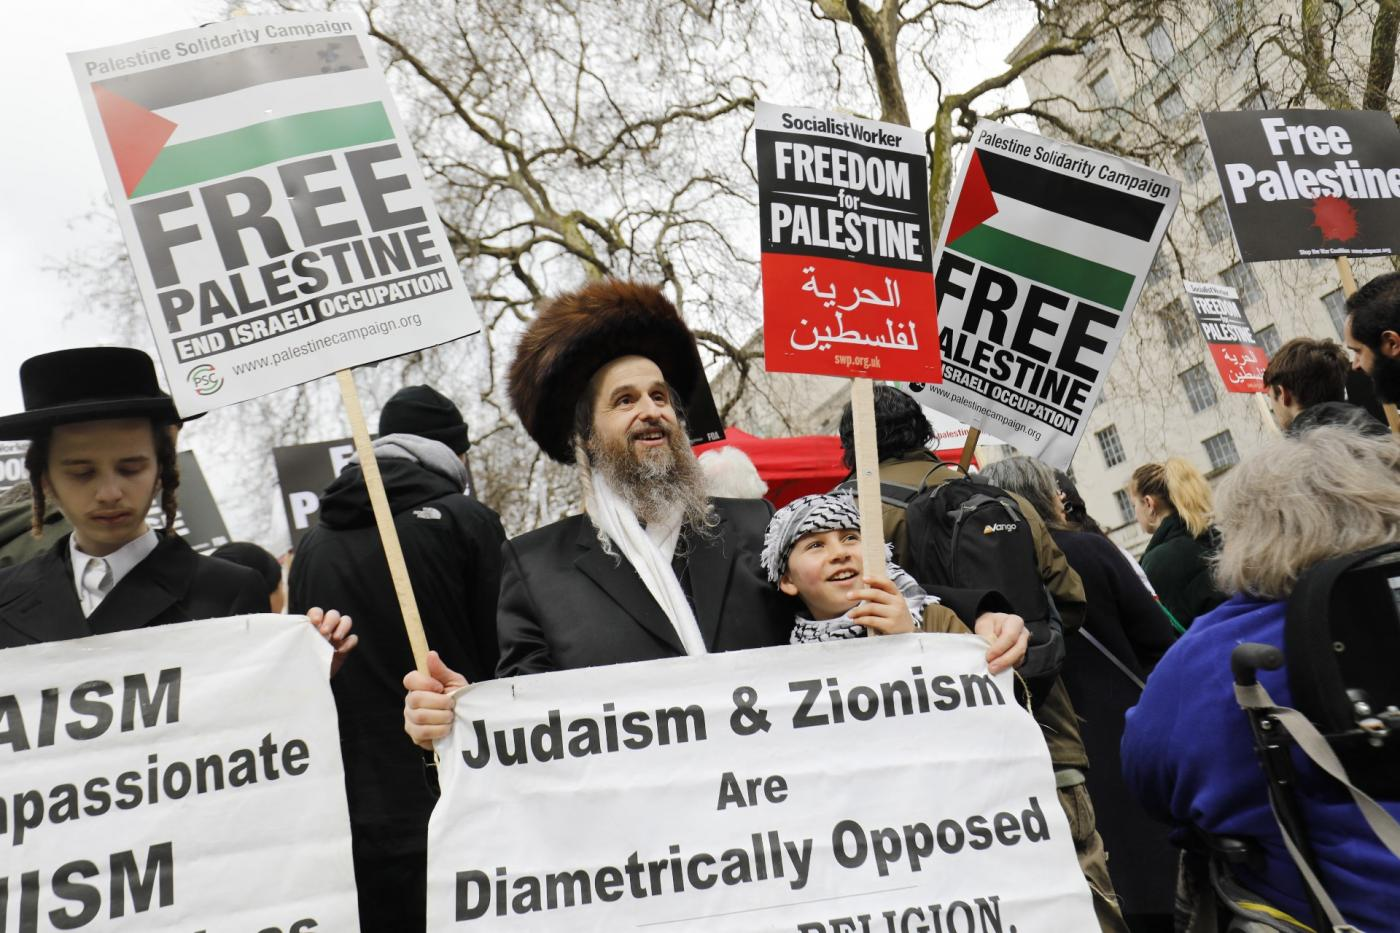 UK's Labour accused of 'purging Jews' from party over antisemitism claims